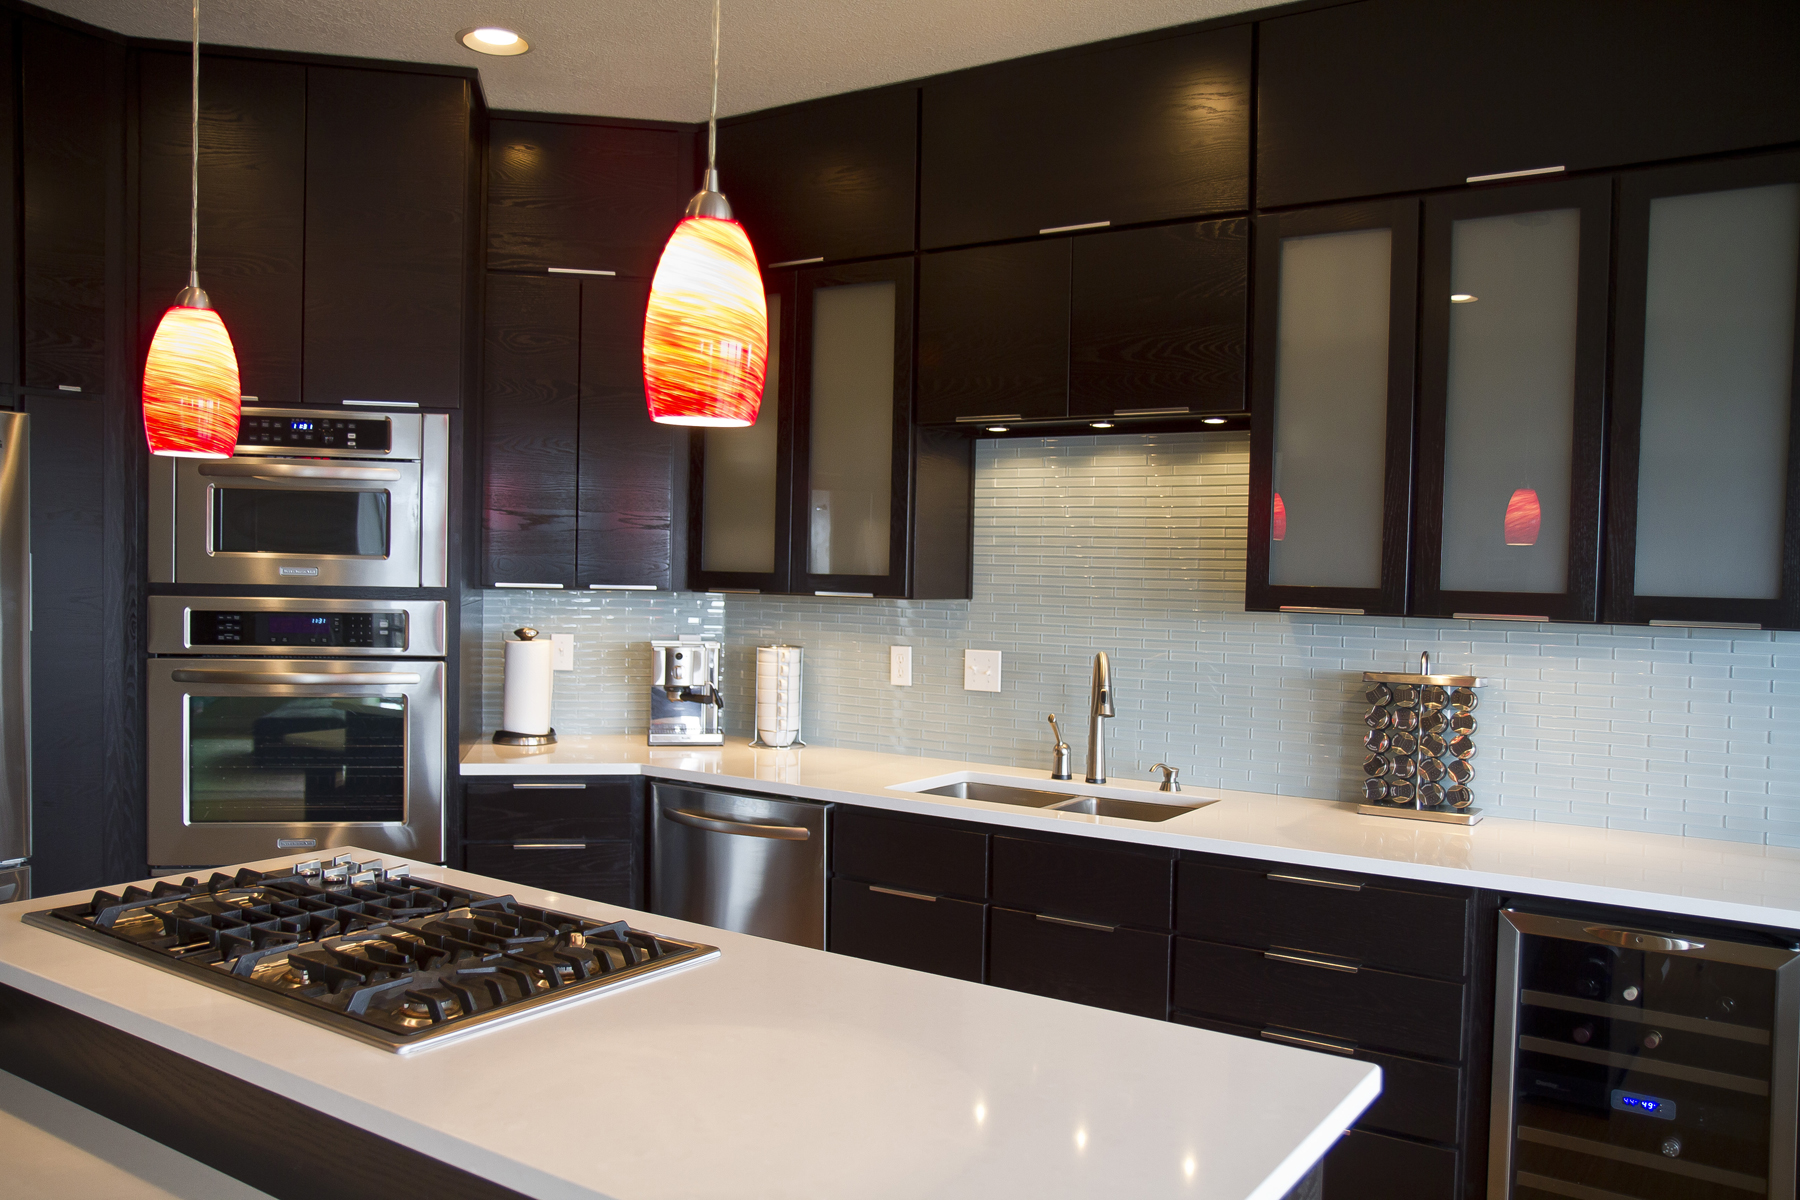 NW Kitchen Designs – Custom Designed Kitchens Pacific Northwest